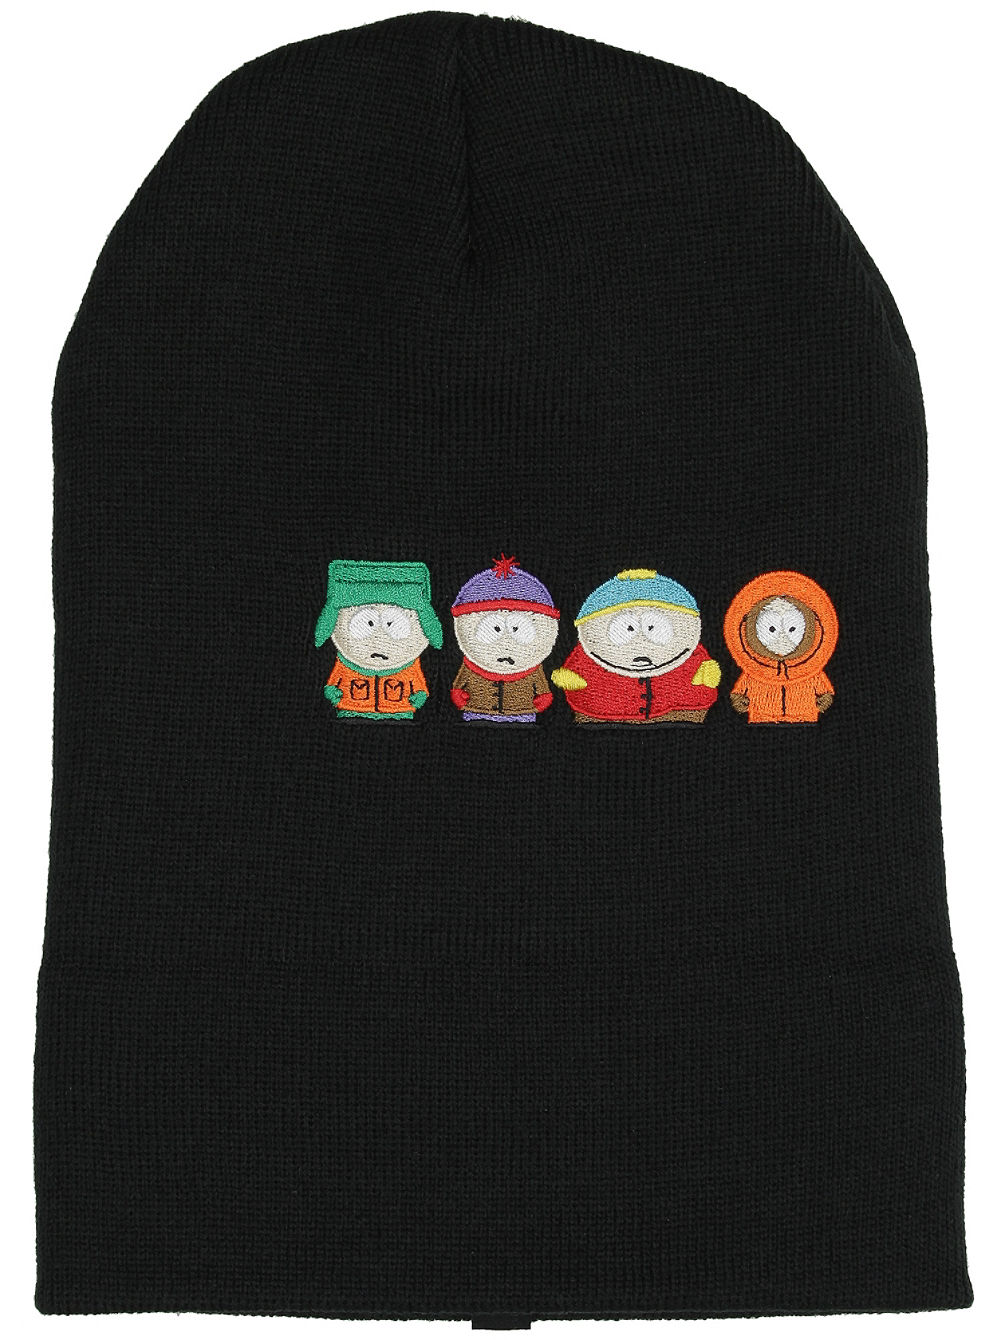 Buy HUF X Southpark Kids Beanie online at blue-tomato.com 017f5b0bcf0